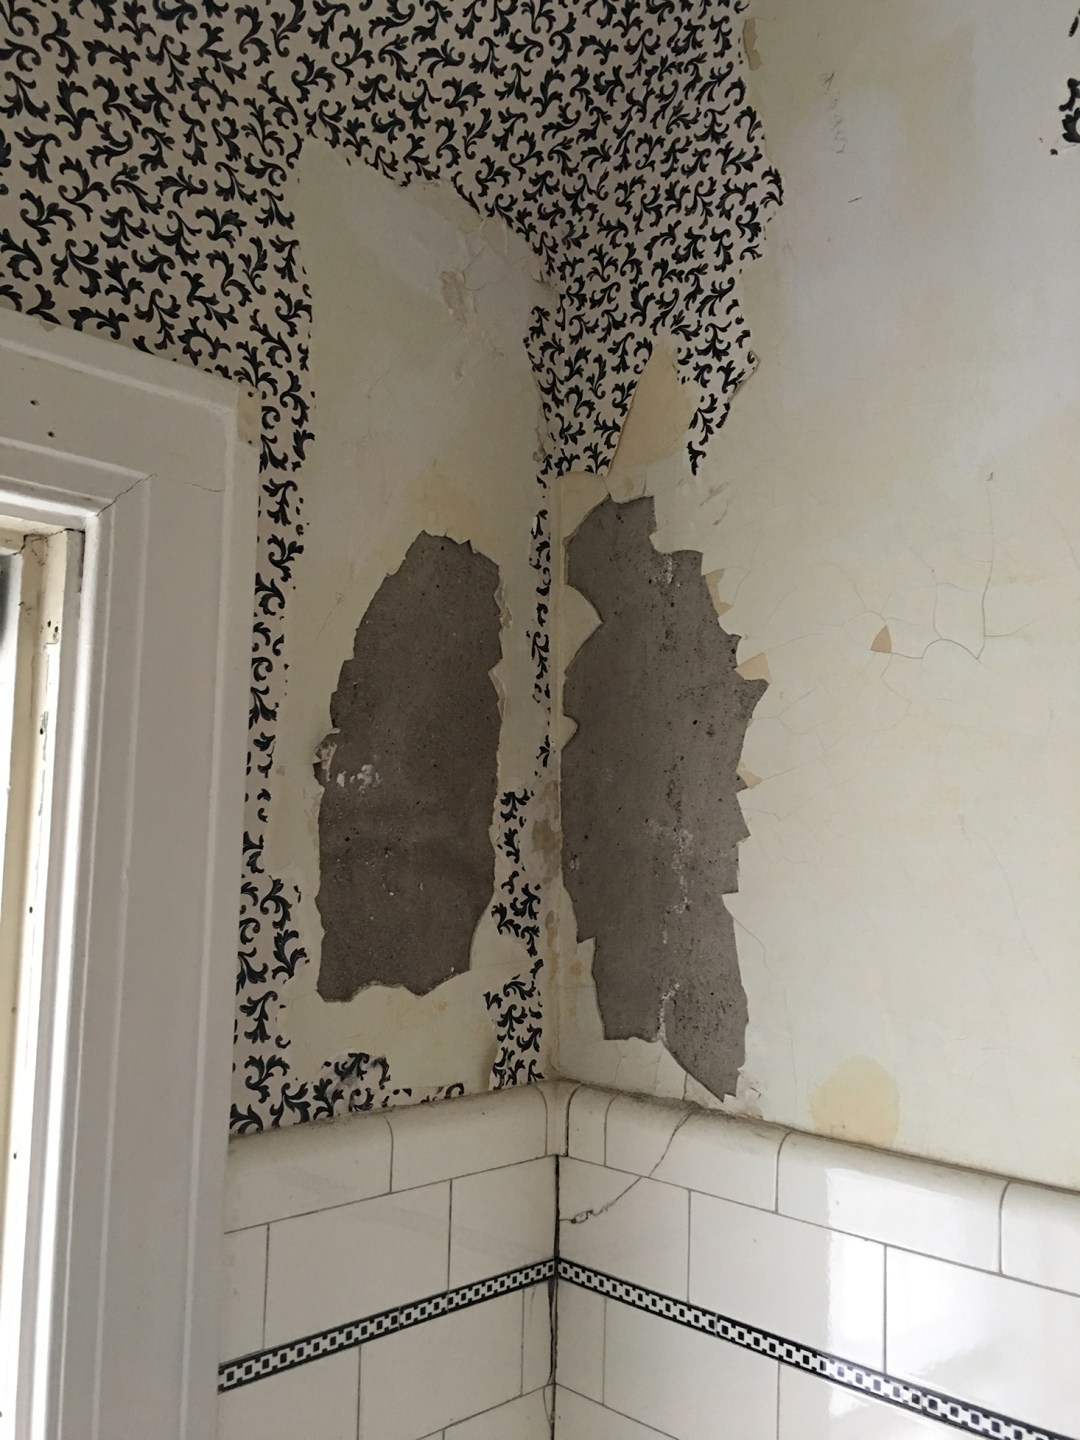 plaster in poor condition